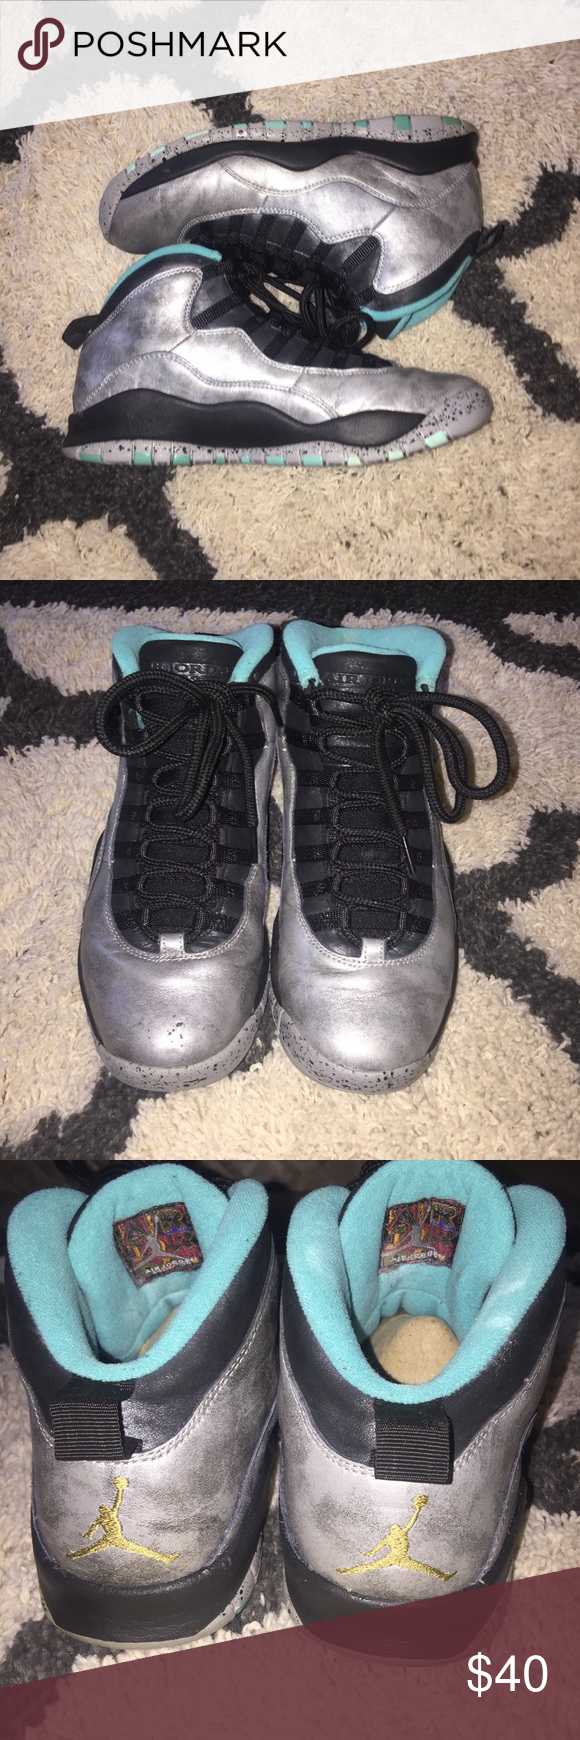 """430cf424adf9d8 Jordan 10 """"Lady Liberty"""" - No Box - Worn - Size 8 in Men s - Dm if you have  any questions Jordan Shoes Sneakers"""